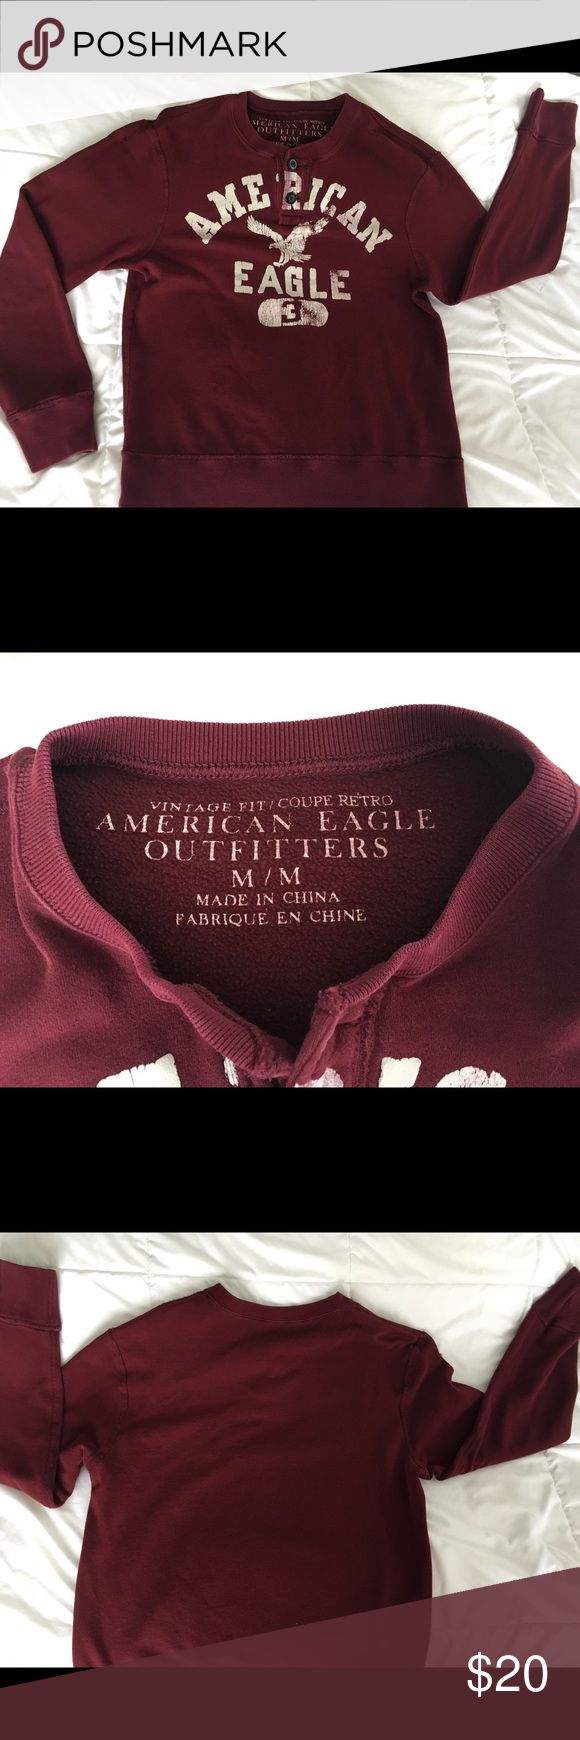 American Eagle Sweatshirt - Vintage Fit Great used condition burgundy sweatshirt. I'm willing to consider reasonable offers. Thank you for checking out my closet! American Eagle Outfitters Tops Sweatshirts & Hoodies